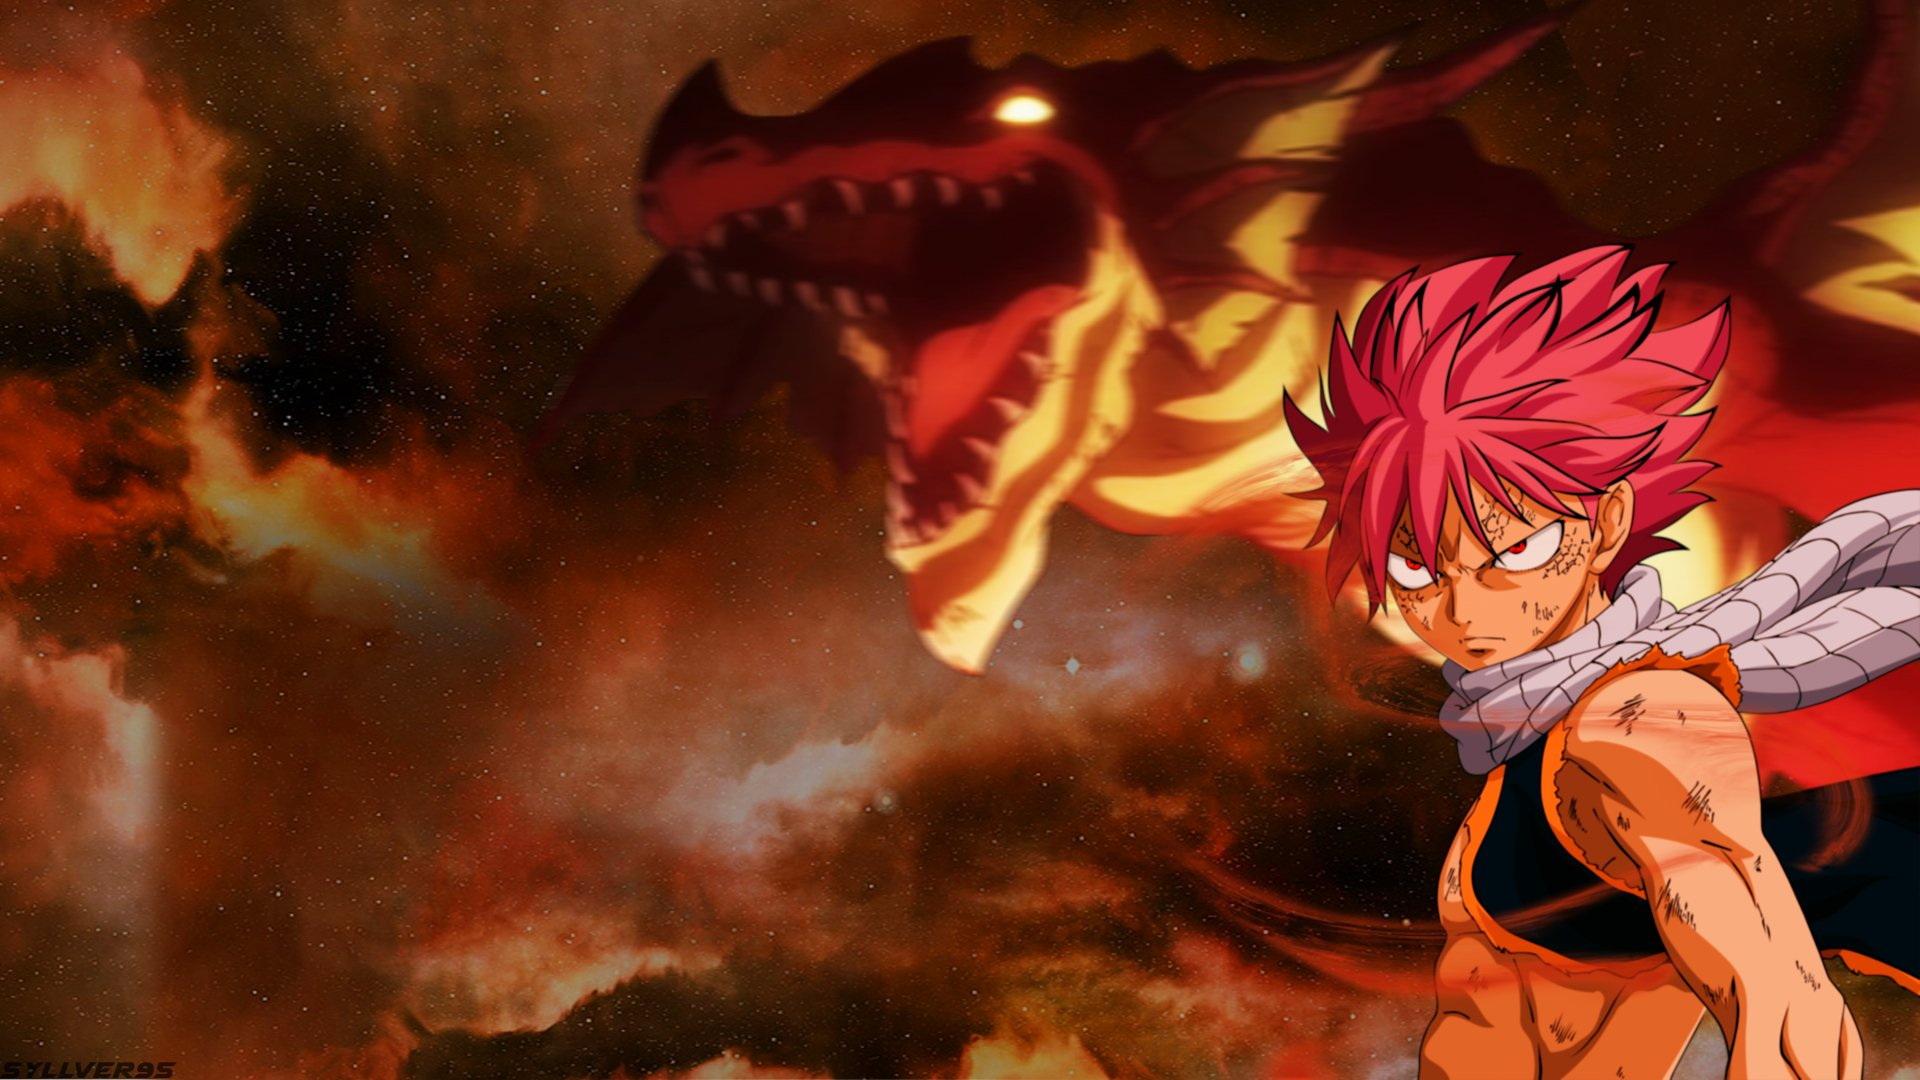 1646 Fairy Tail Hd Wallpapers Background Images Wallpaper Abyss